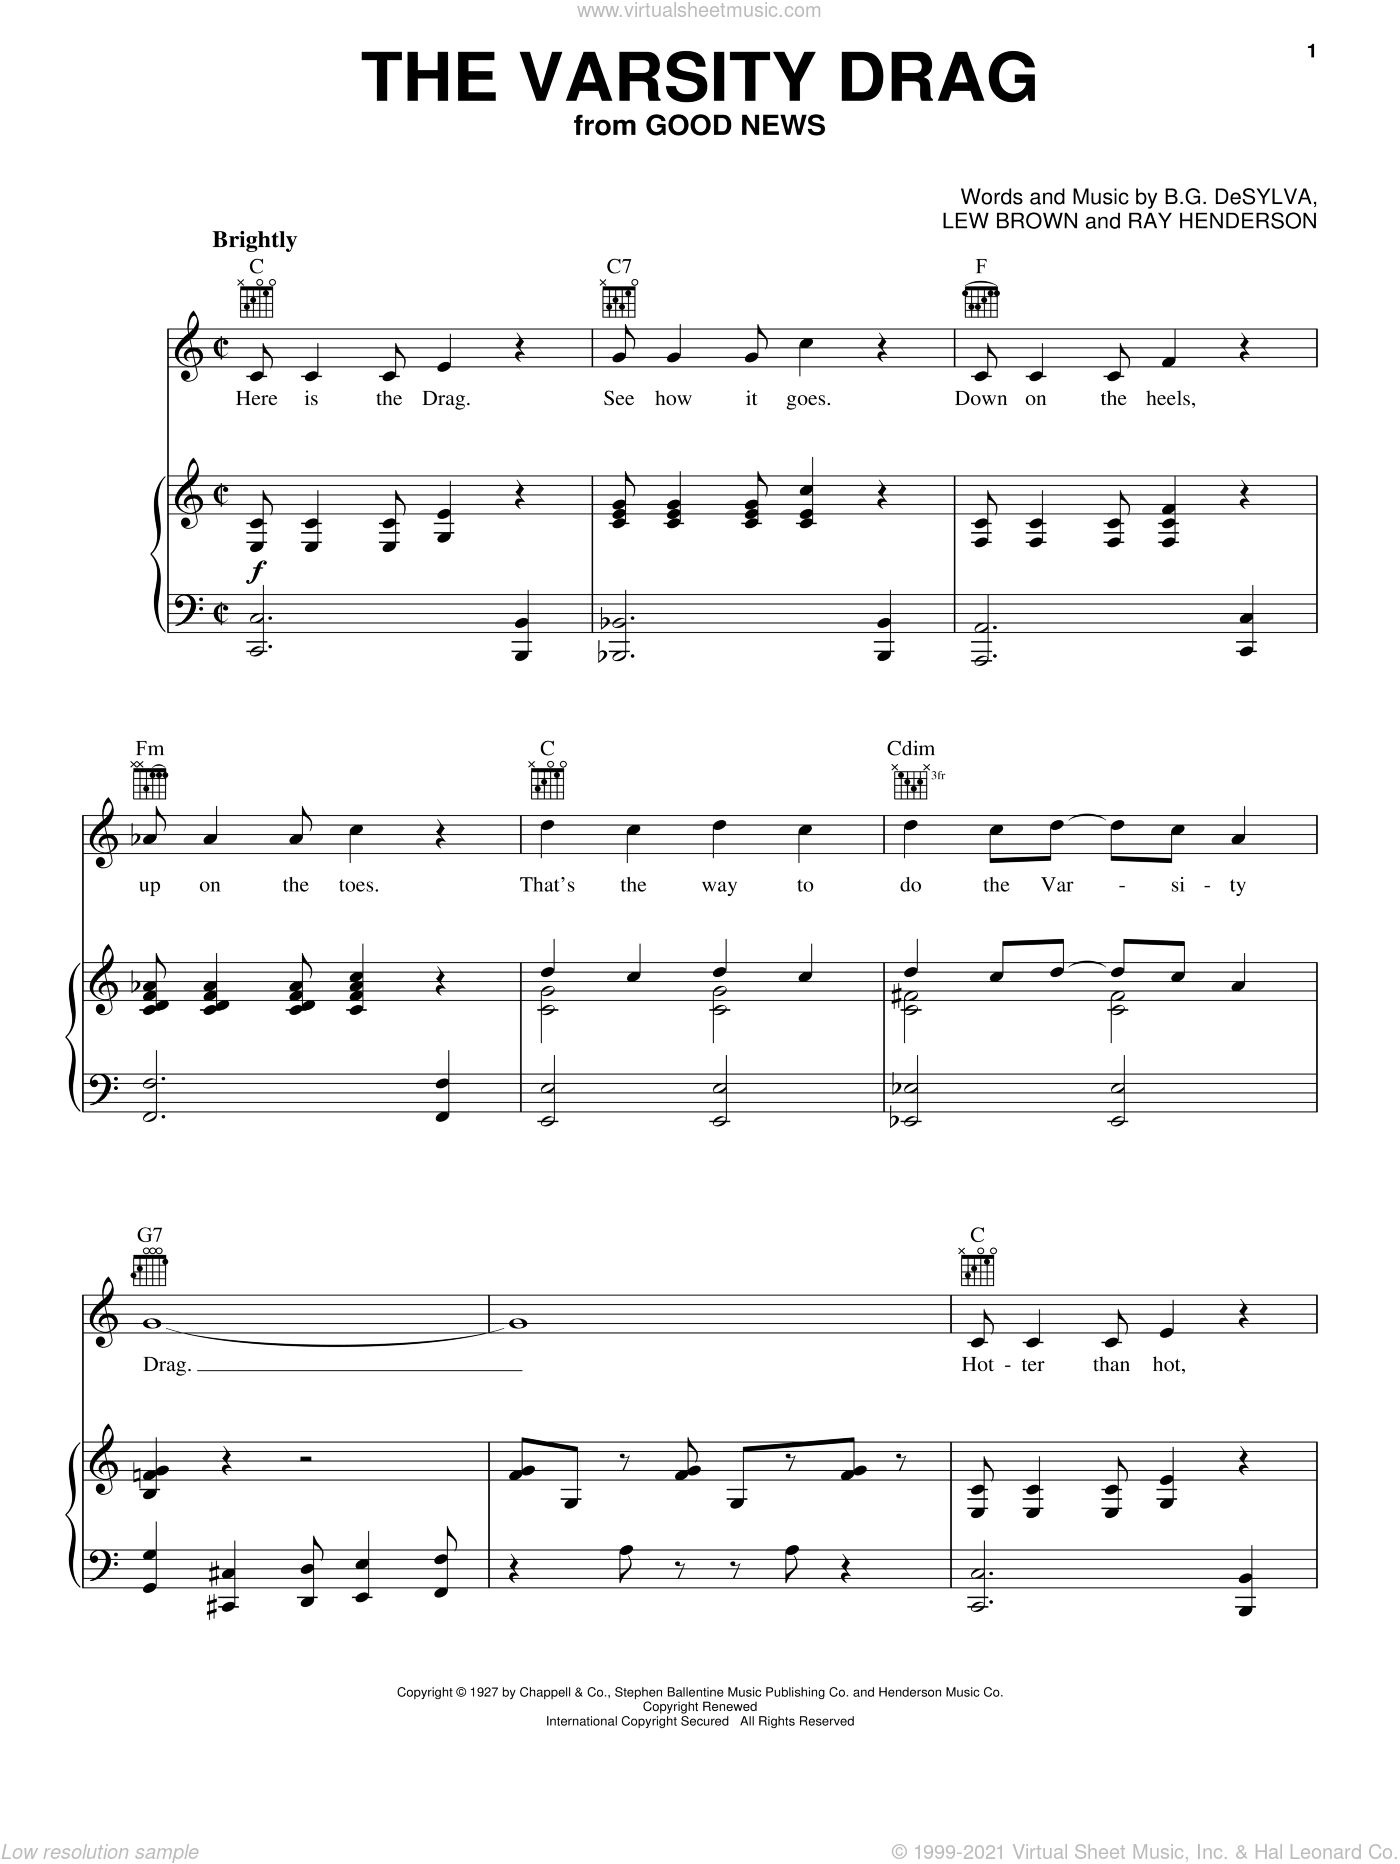 The Varsity Drag sheet music for voice, piano or guitar by Ray Henderson, Buddy DeSylva and Lew Brown, intermediate skill level